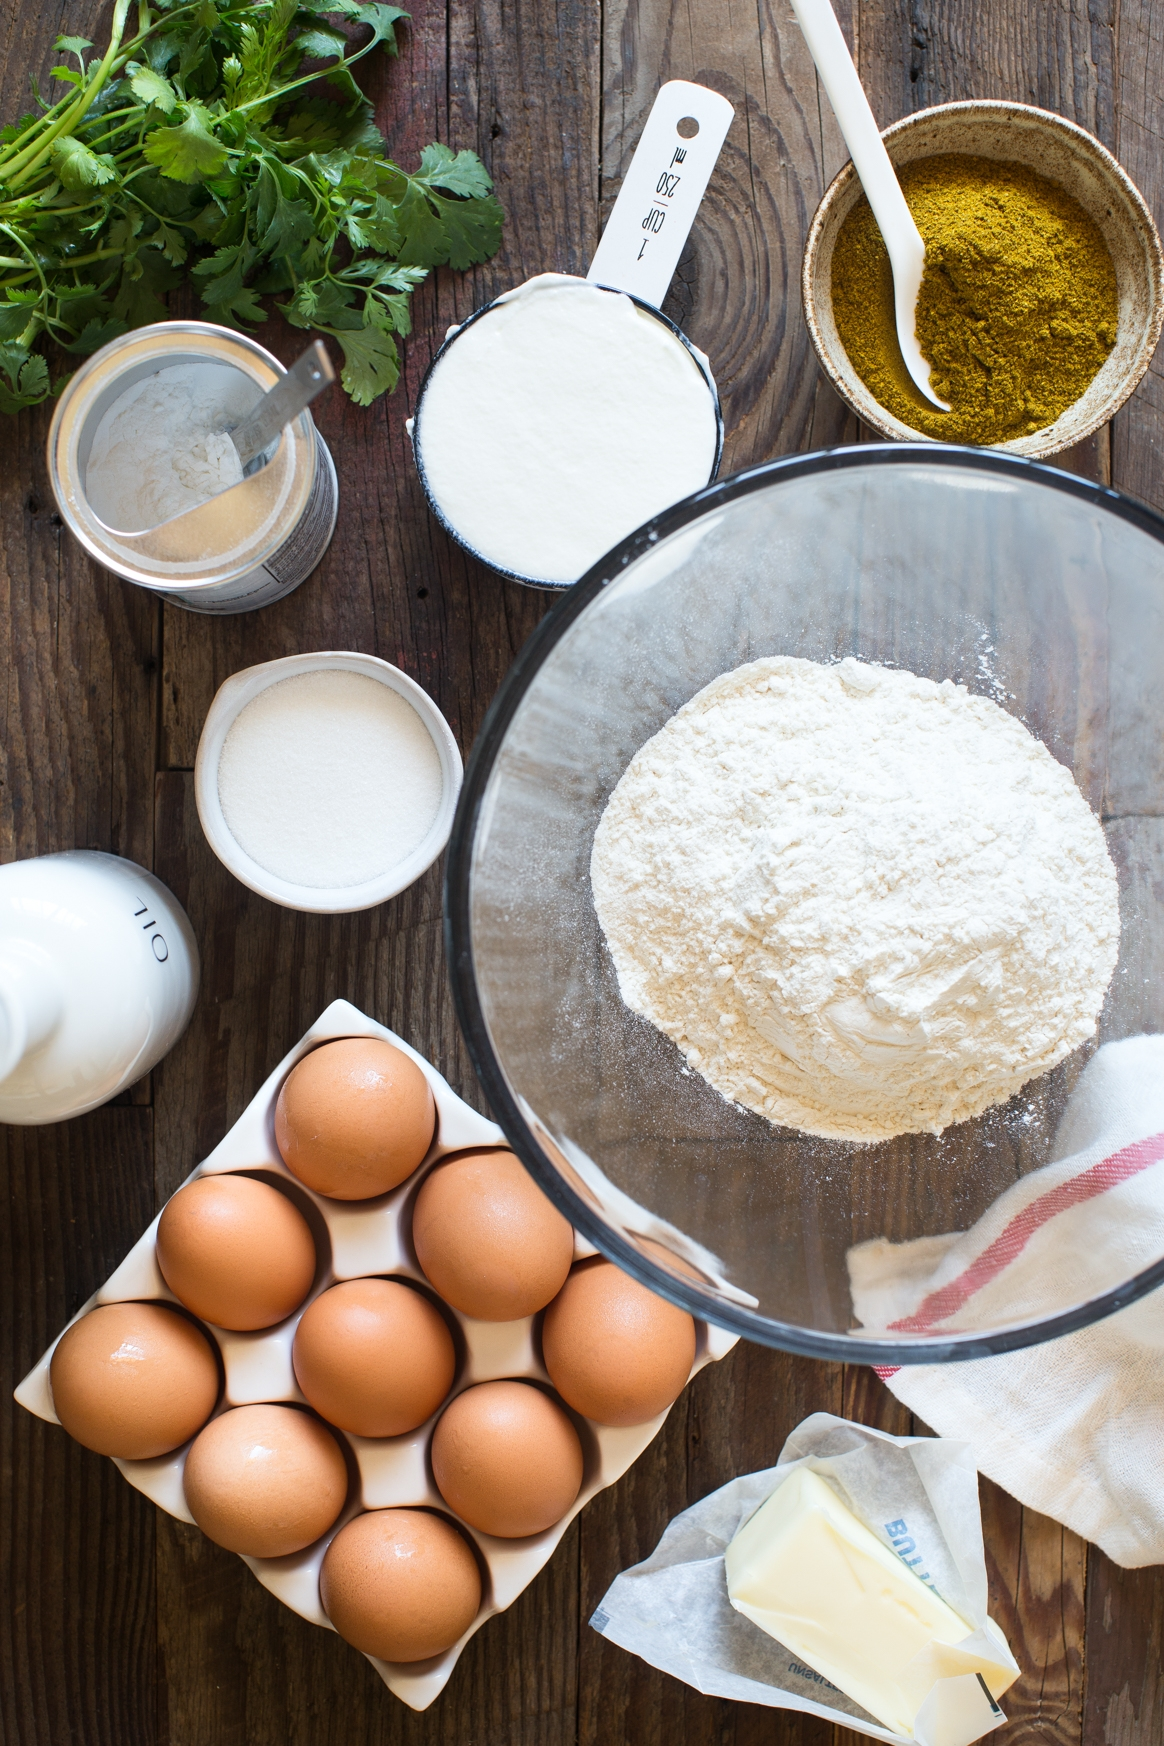 Homemade Flatbread with Yogurt, Eggs and Curry Brown Butter Ingredients